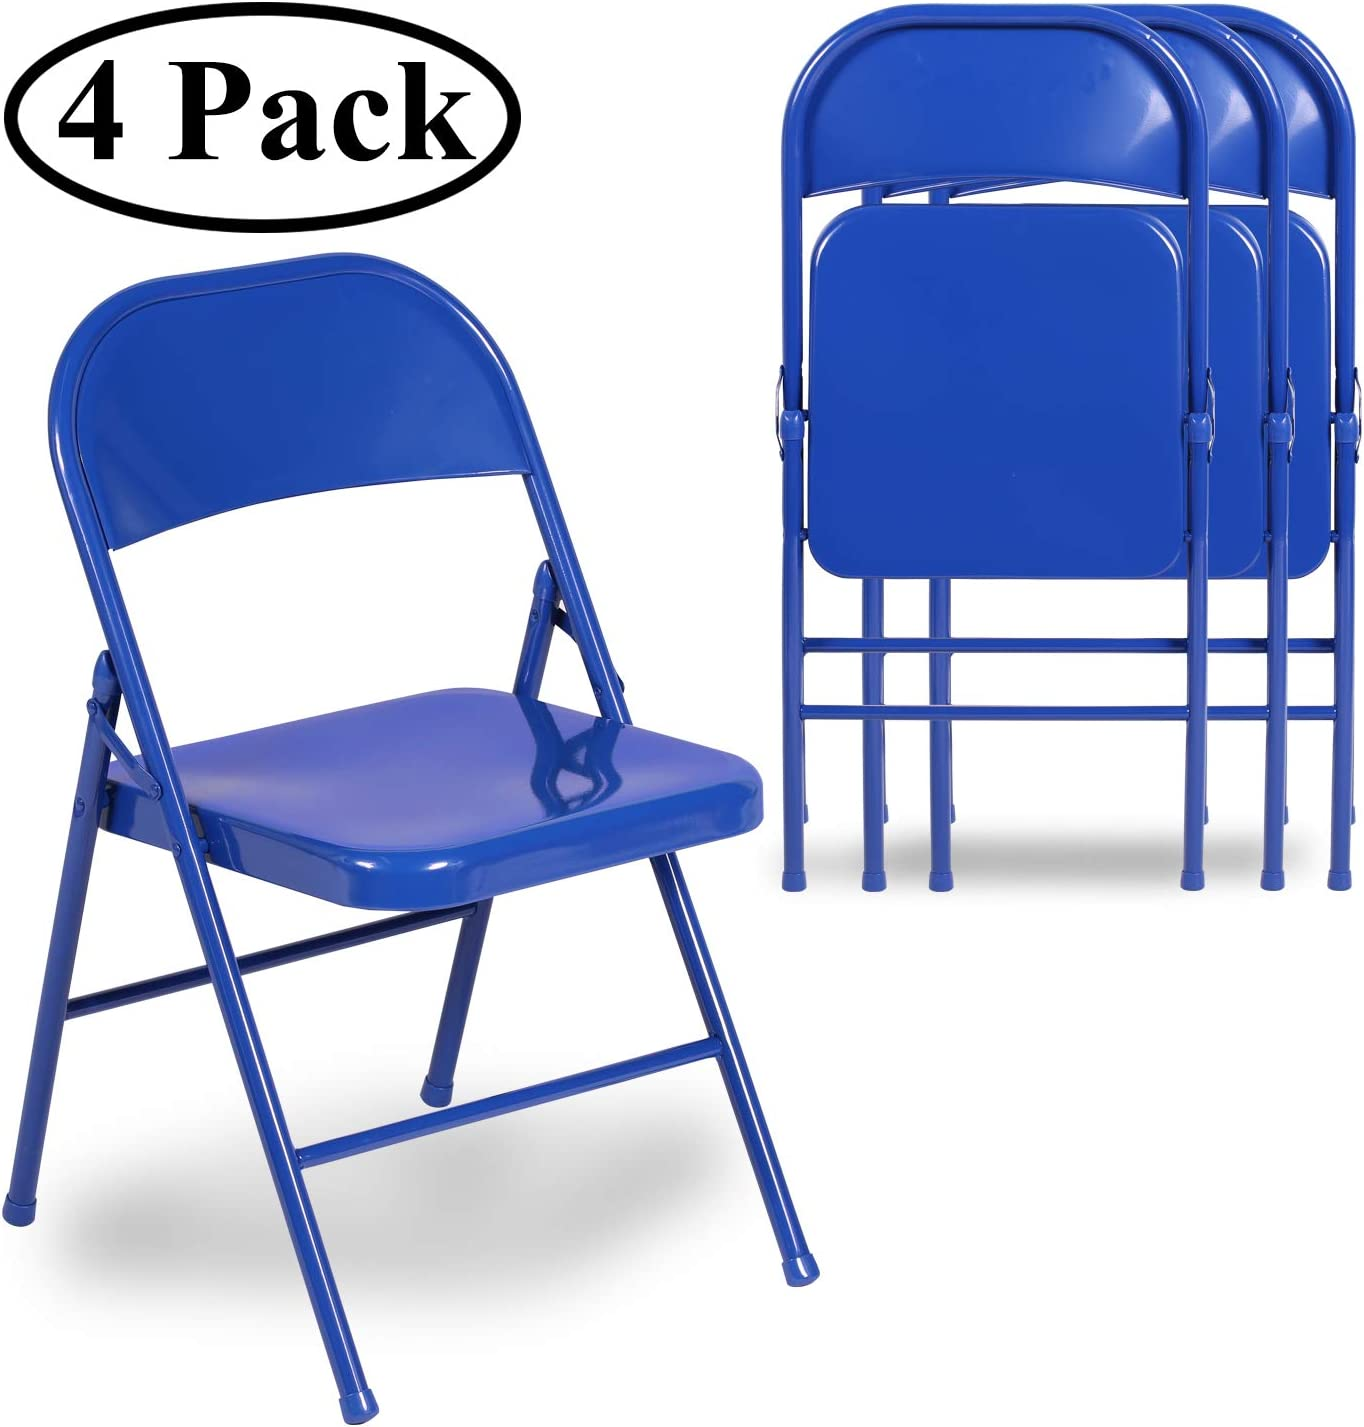 VECELO Folding Chair Triple Braced & Double Hinged Back with Metal Frame for Home Office, Blue